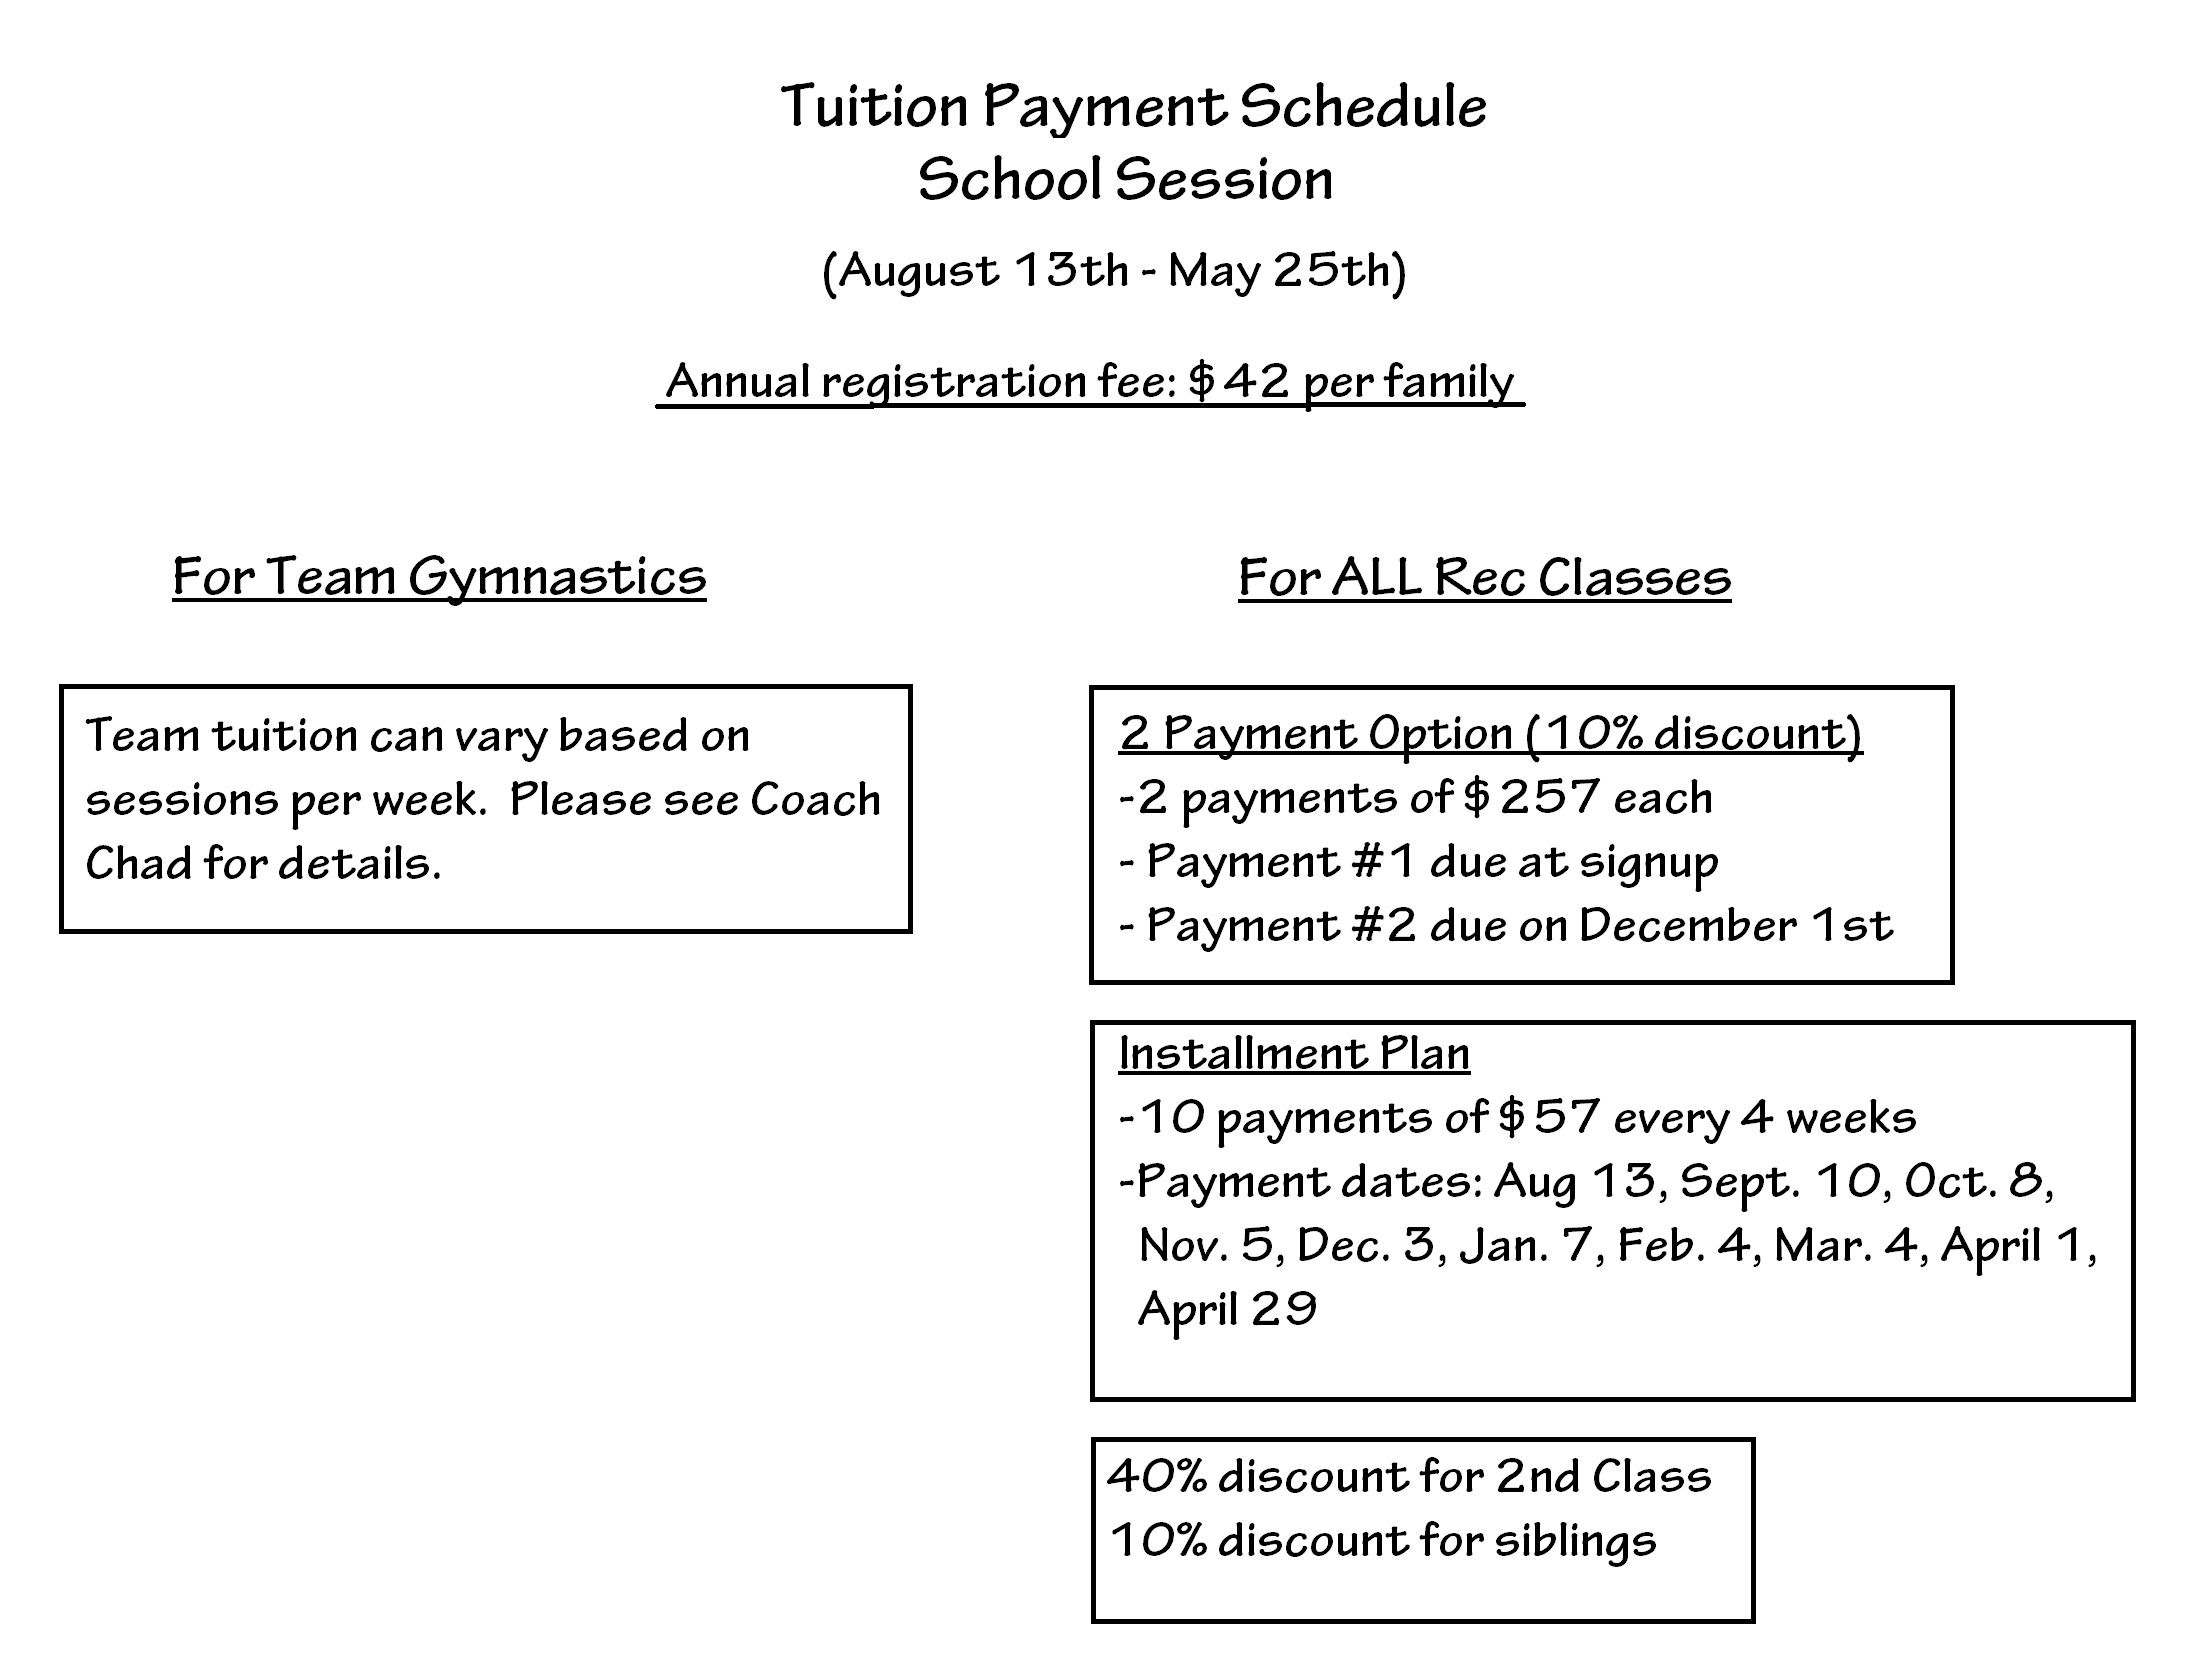 Tuition Payment - school session